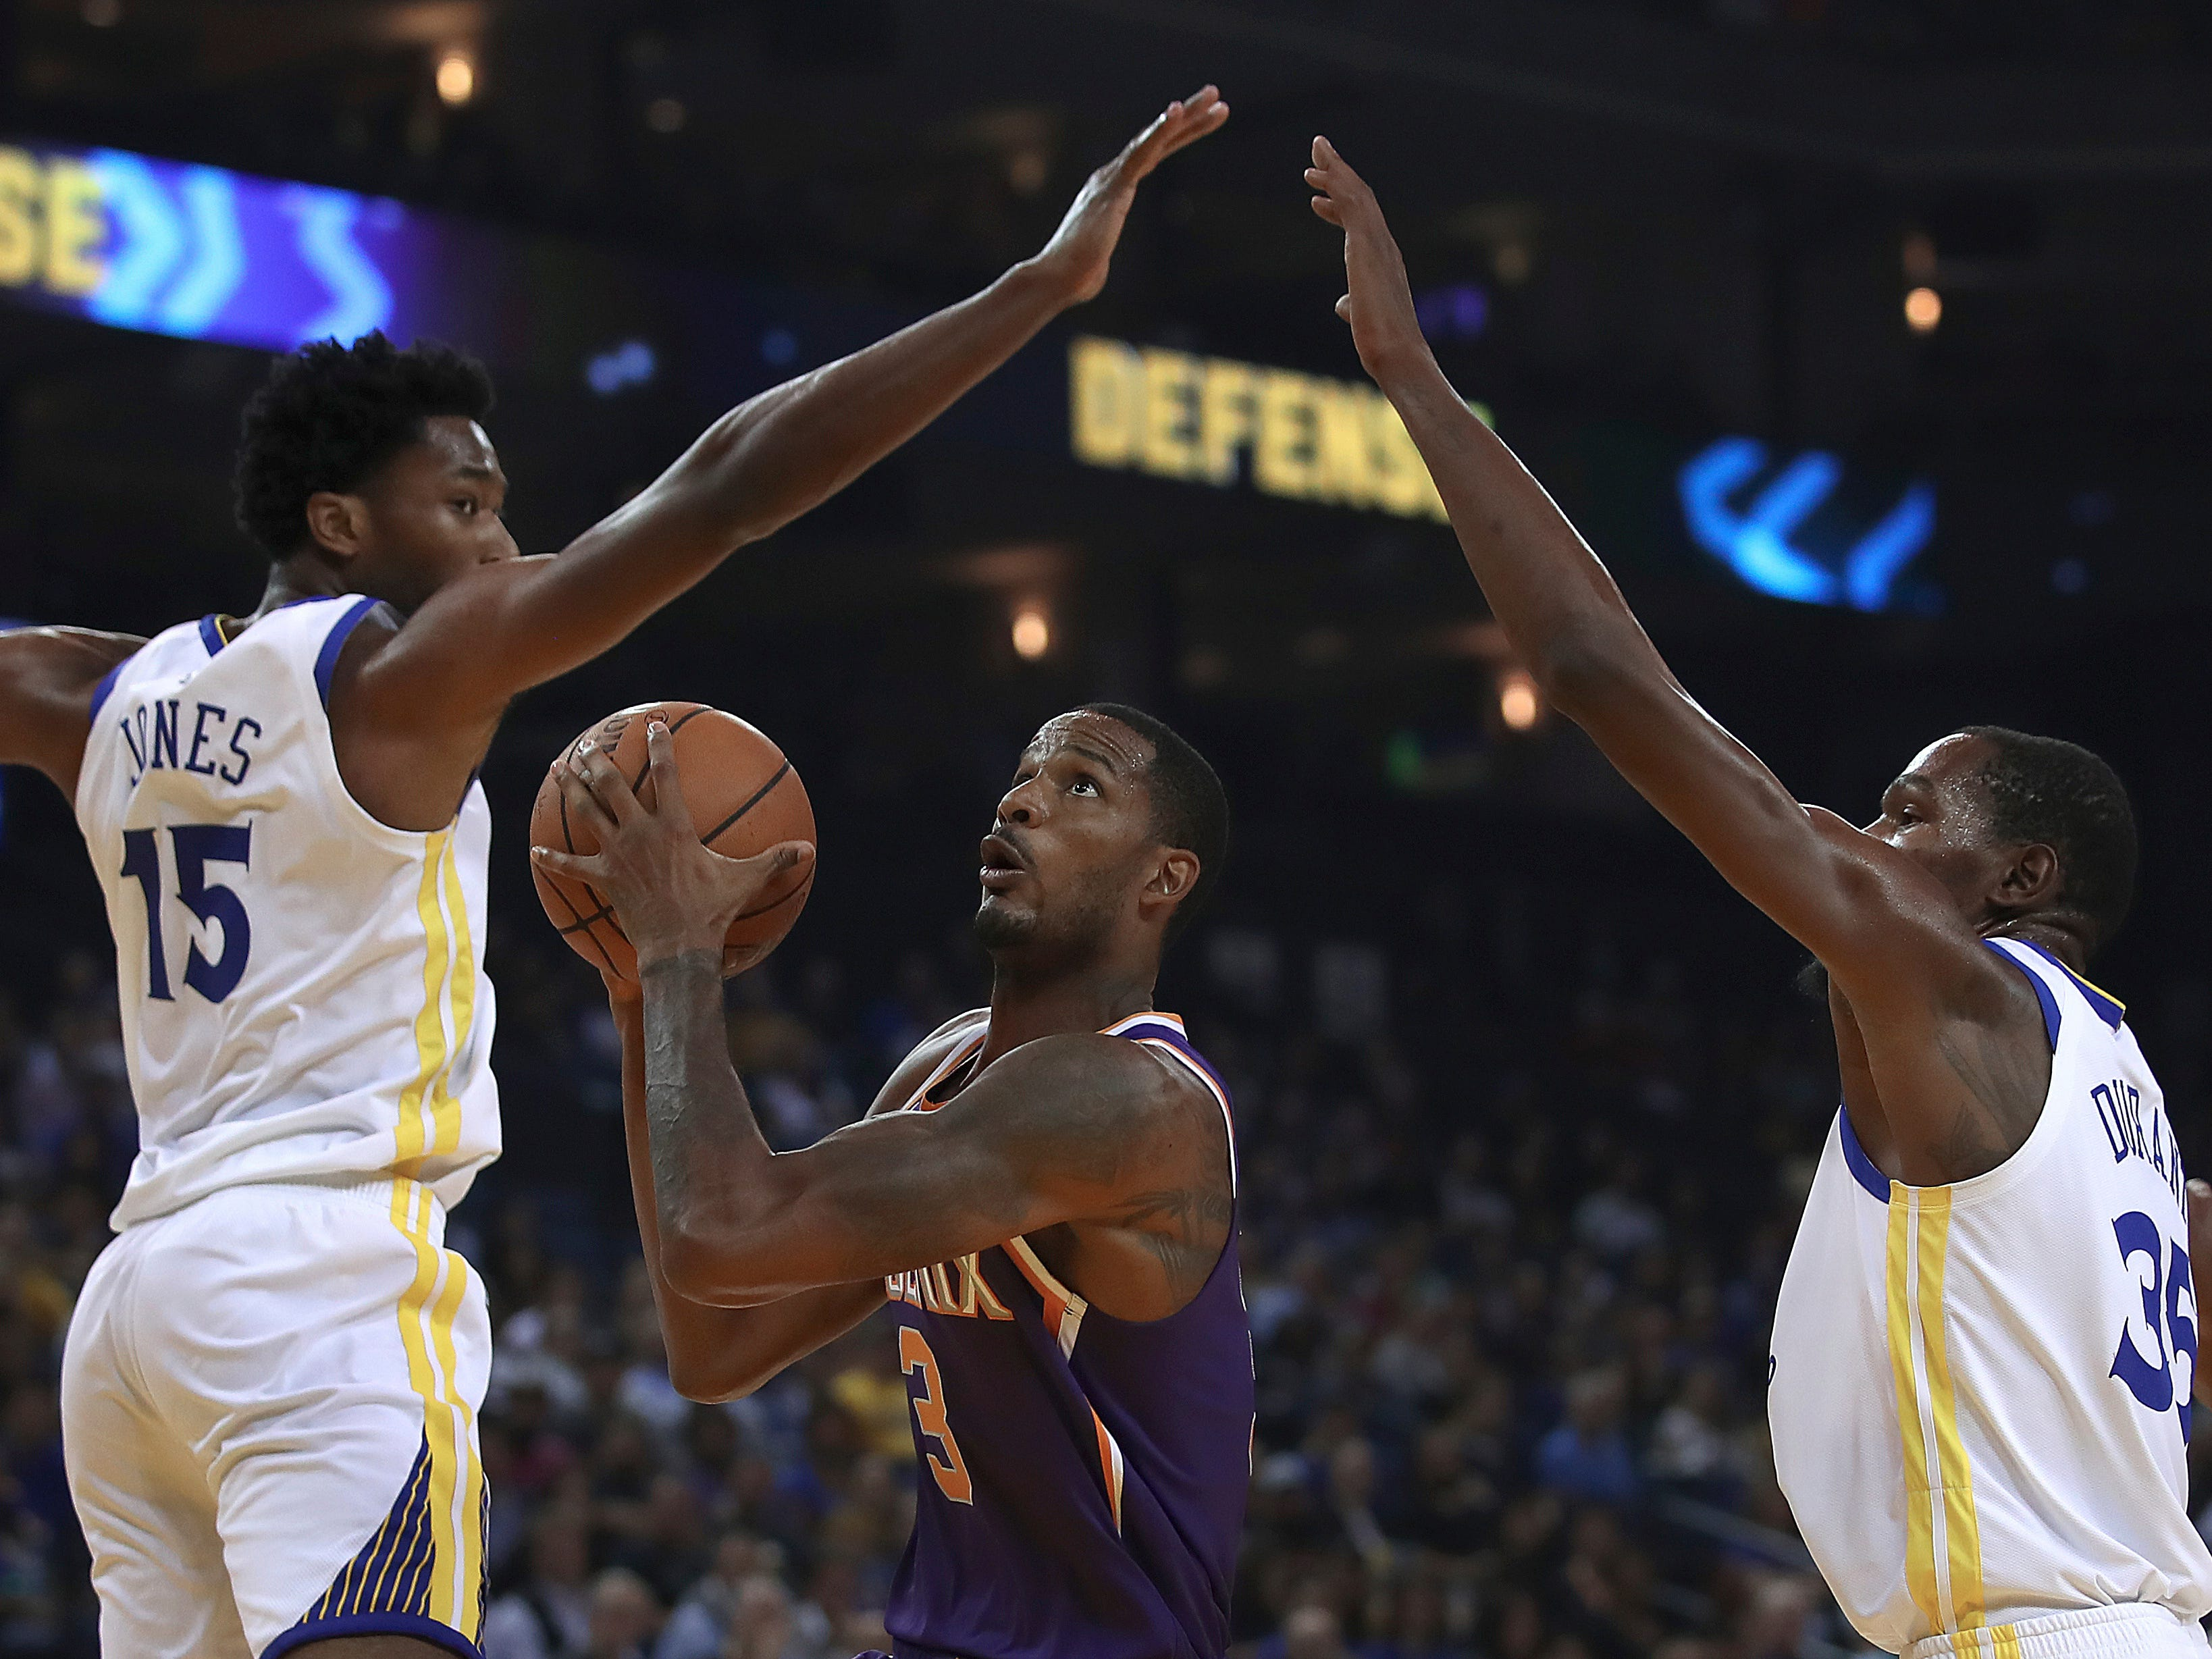 Phoenix Suns' Trevor Ariza, center, looks to shoot between Golden State Warriors' Damian Jones (15) and Kevin Durant, right, during the first half of a preseason NBA basketball game Monday, Oct. 8, 2018, in Oakland, Calif.